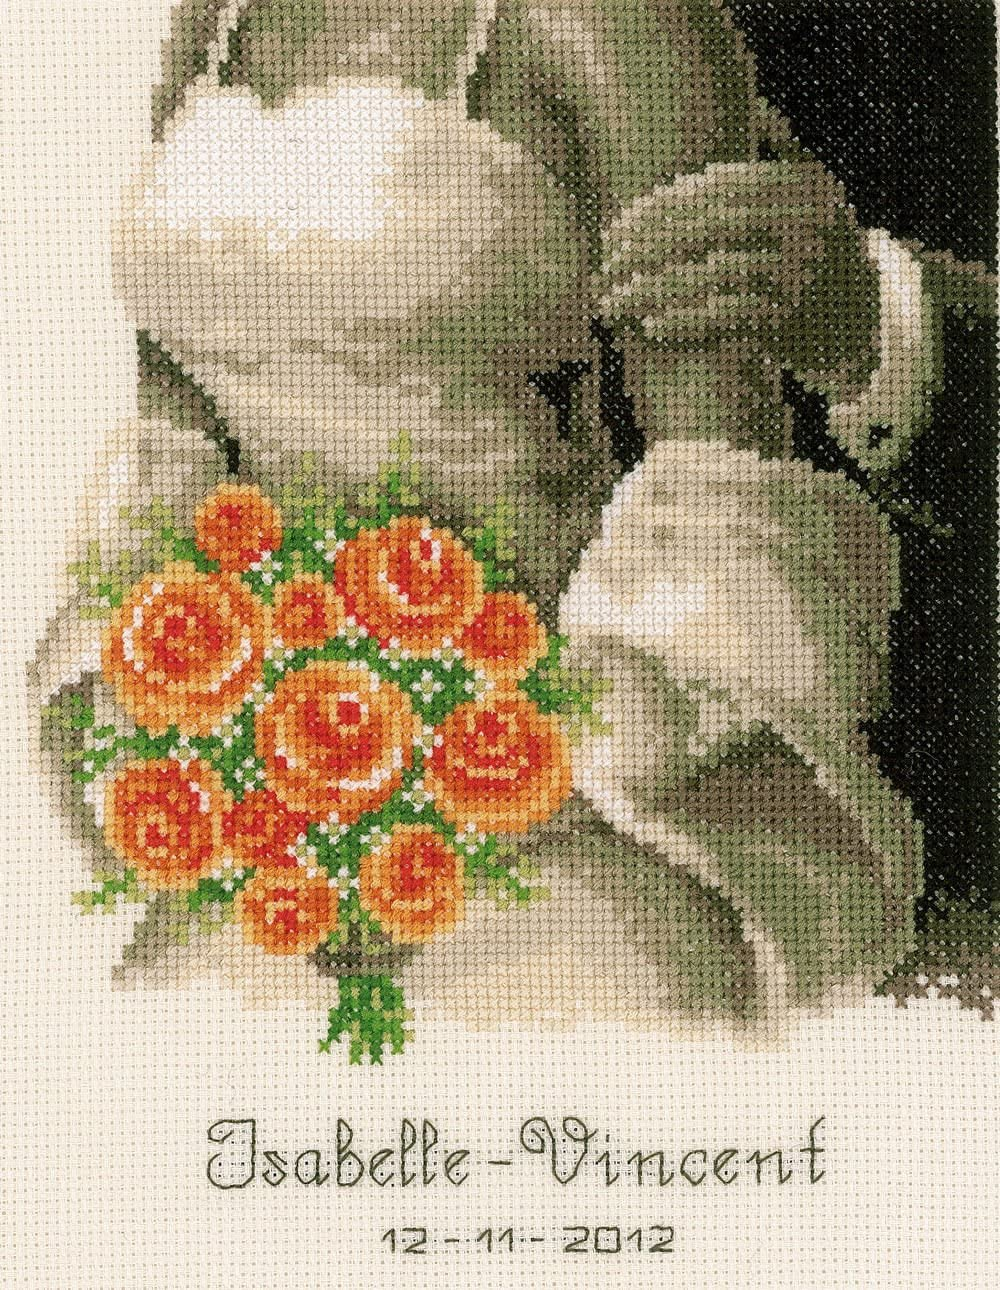 Vervaco 2002/75.355   The Bouquet Wedding Record Counted Cross Stitch Kit